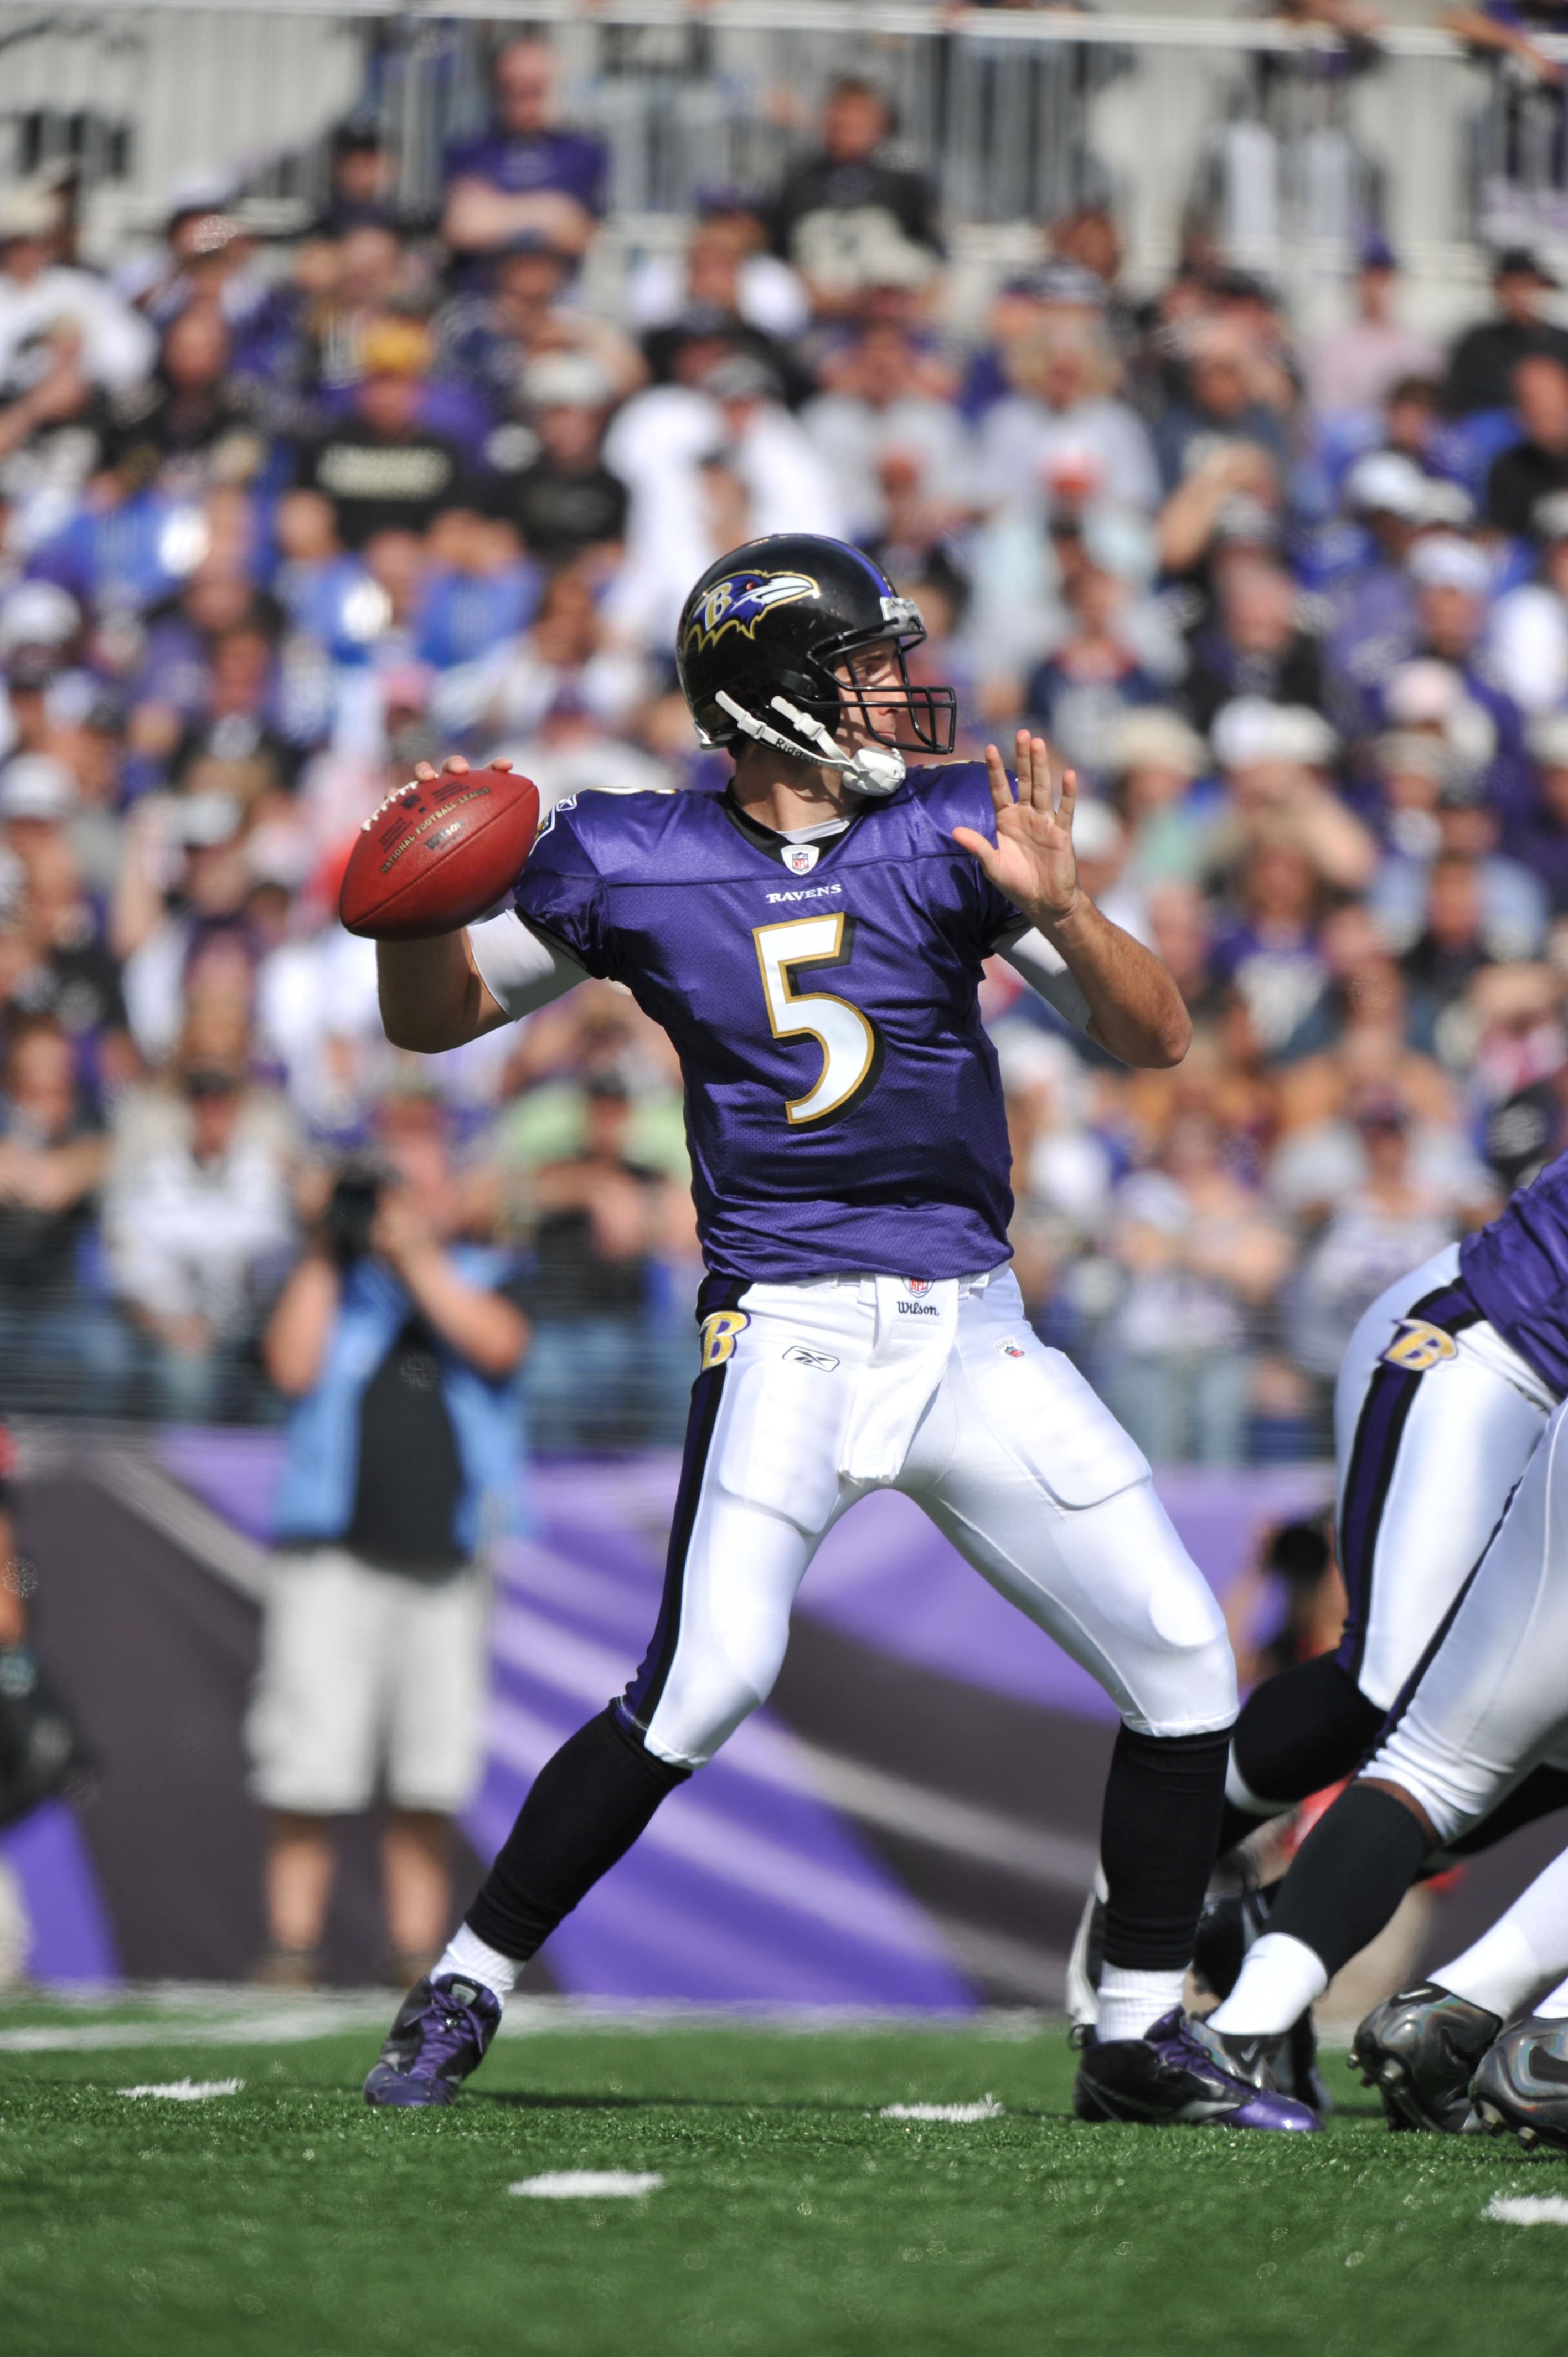 Flacco had a solid performance